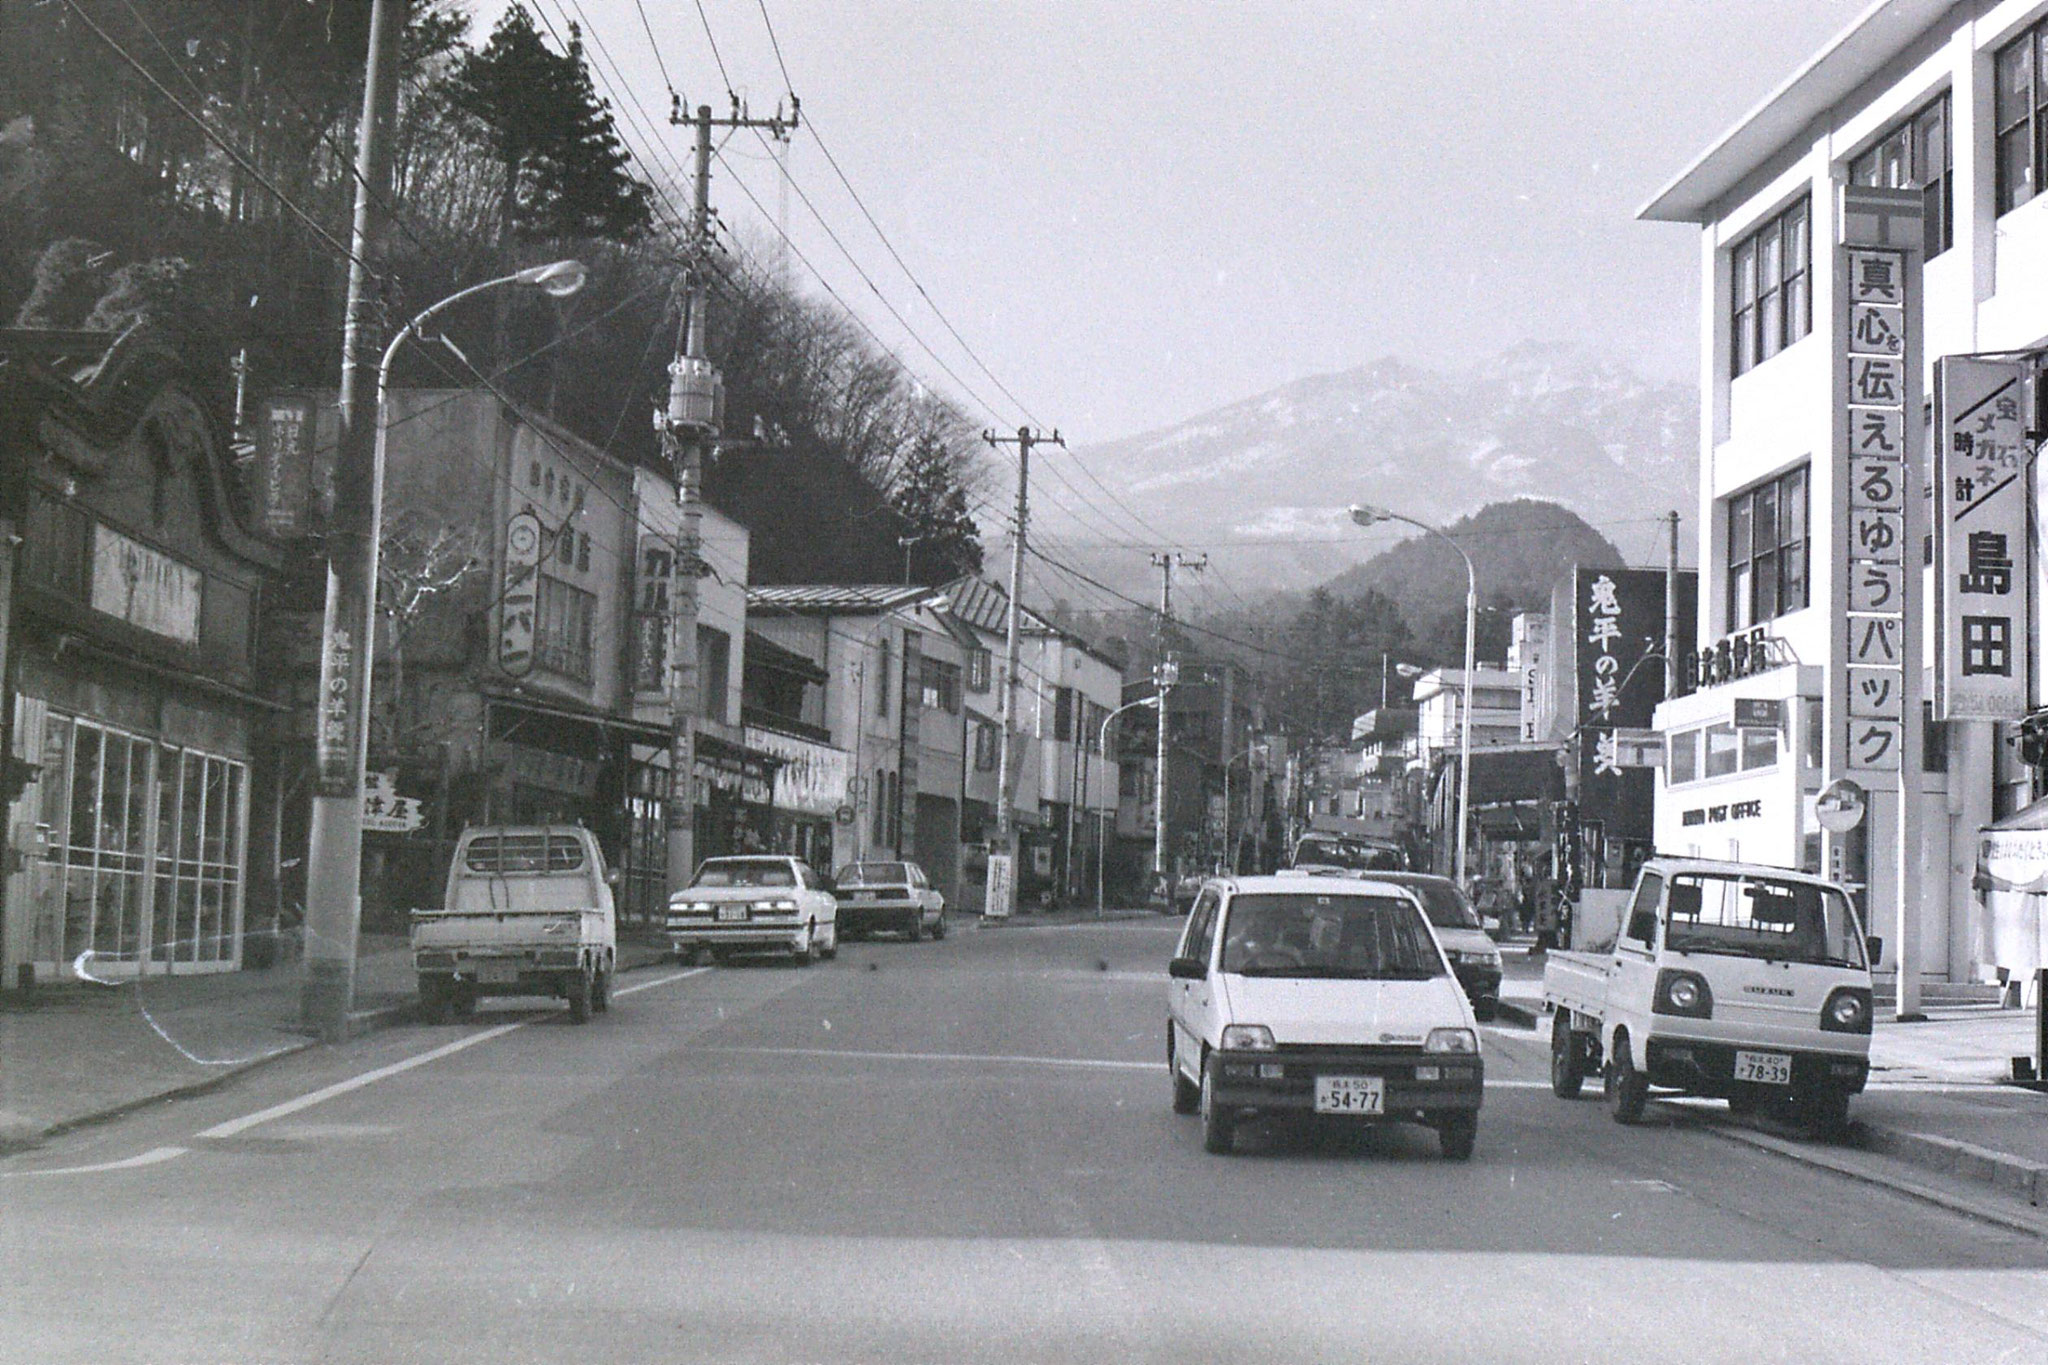 31/1/1989: 11: main street and antique shop